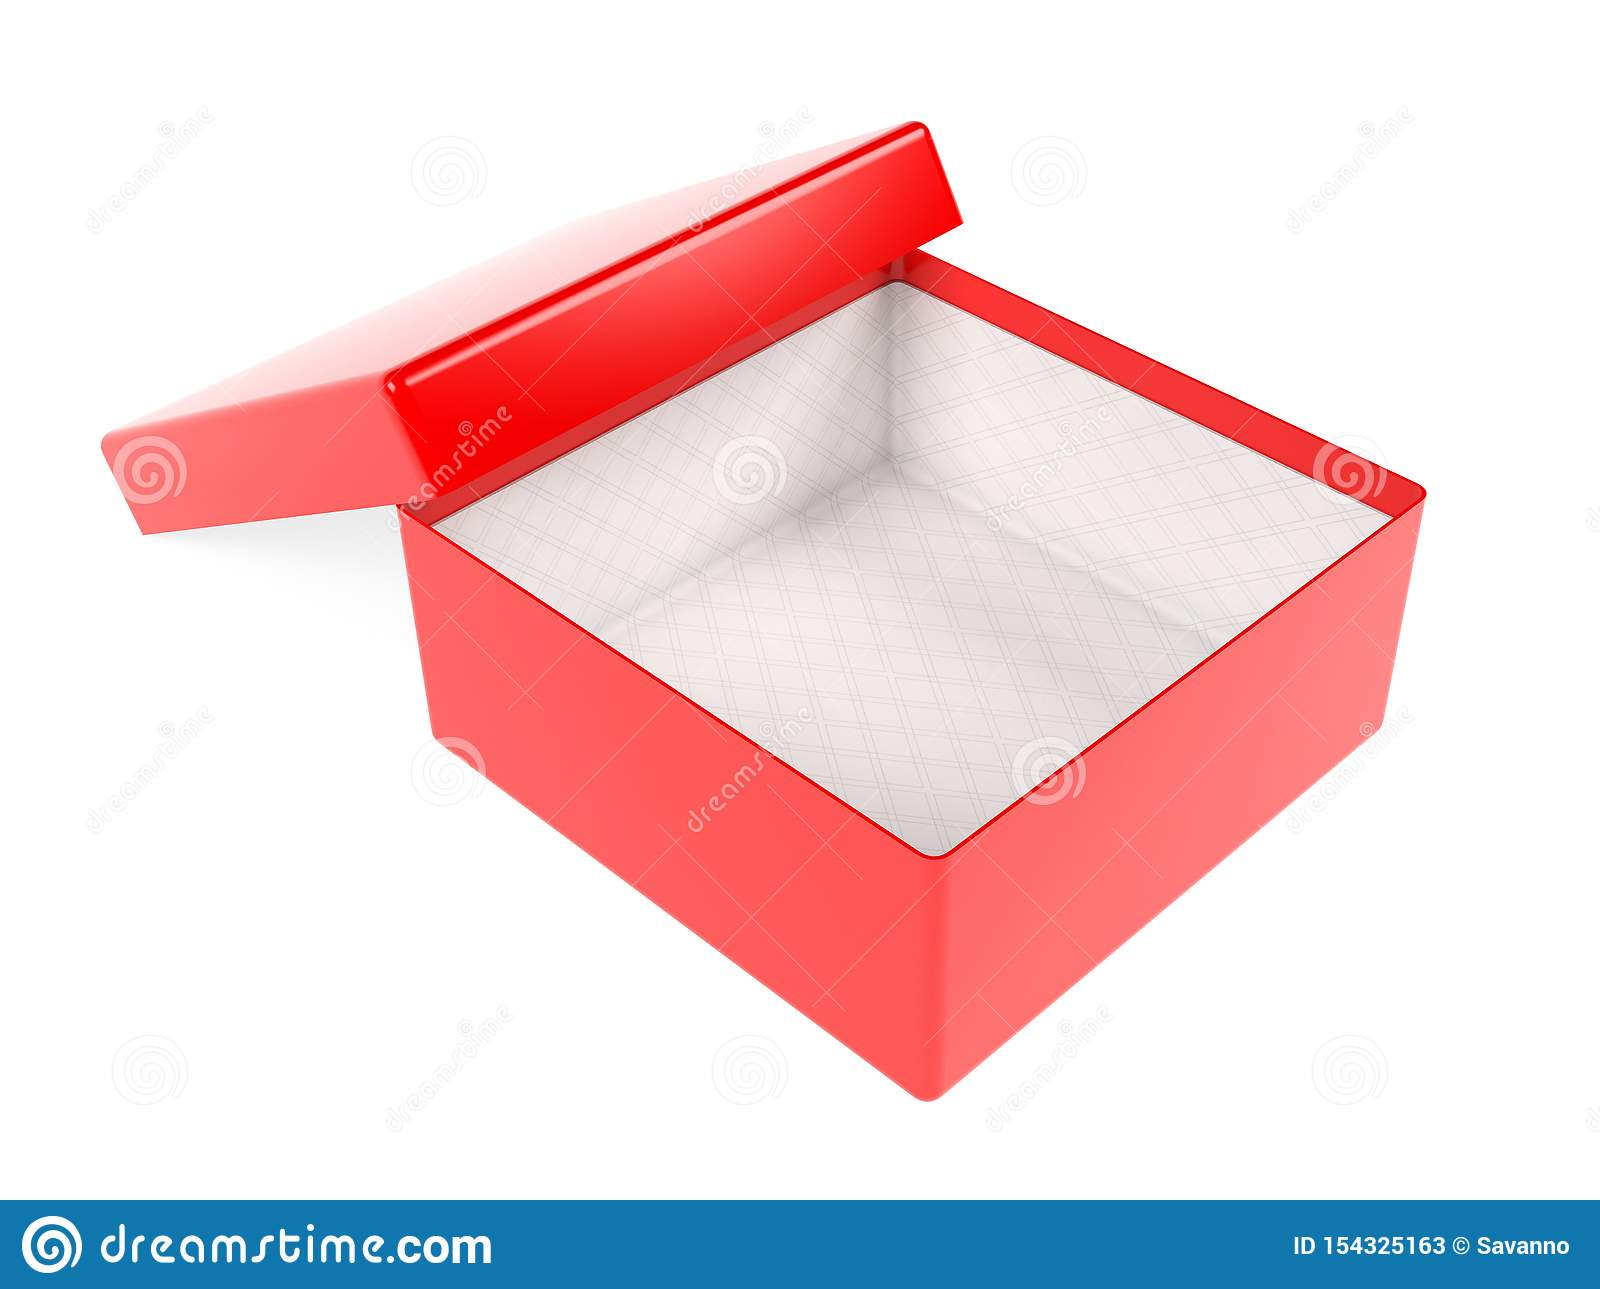 Red Open Gift Box Realistic Carton Mock Up 3d Rendering